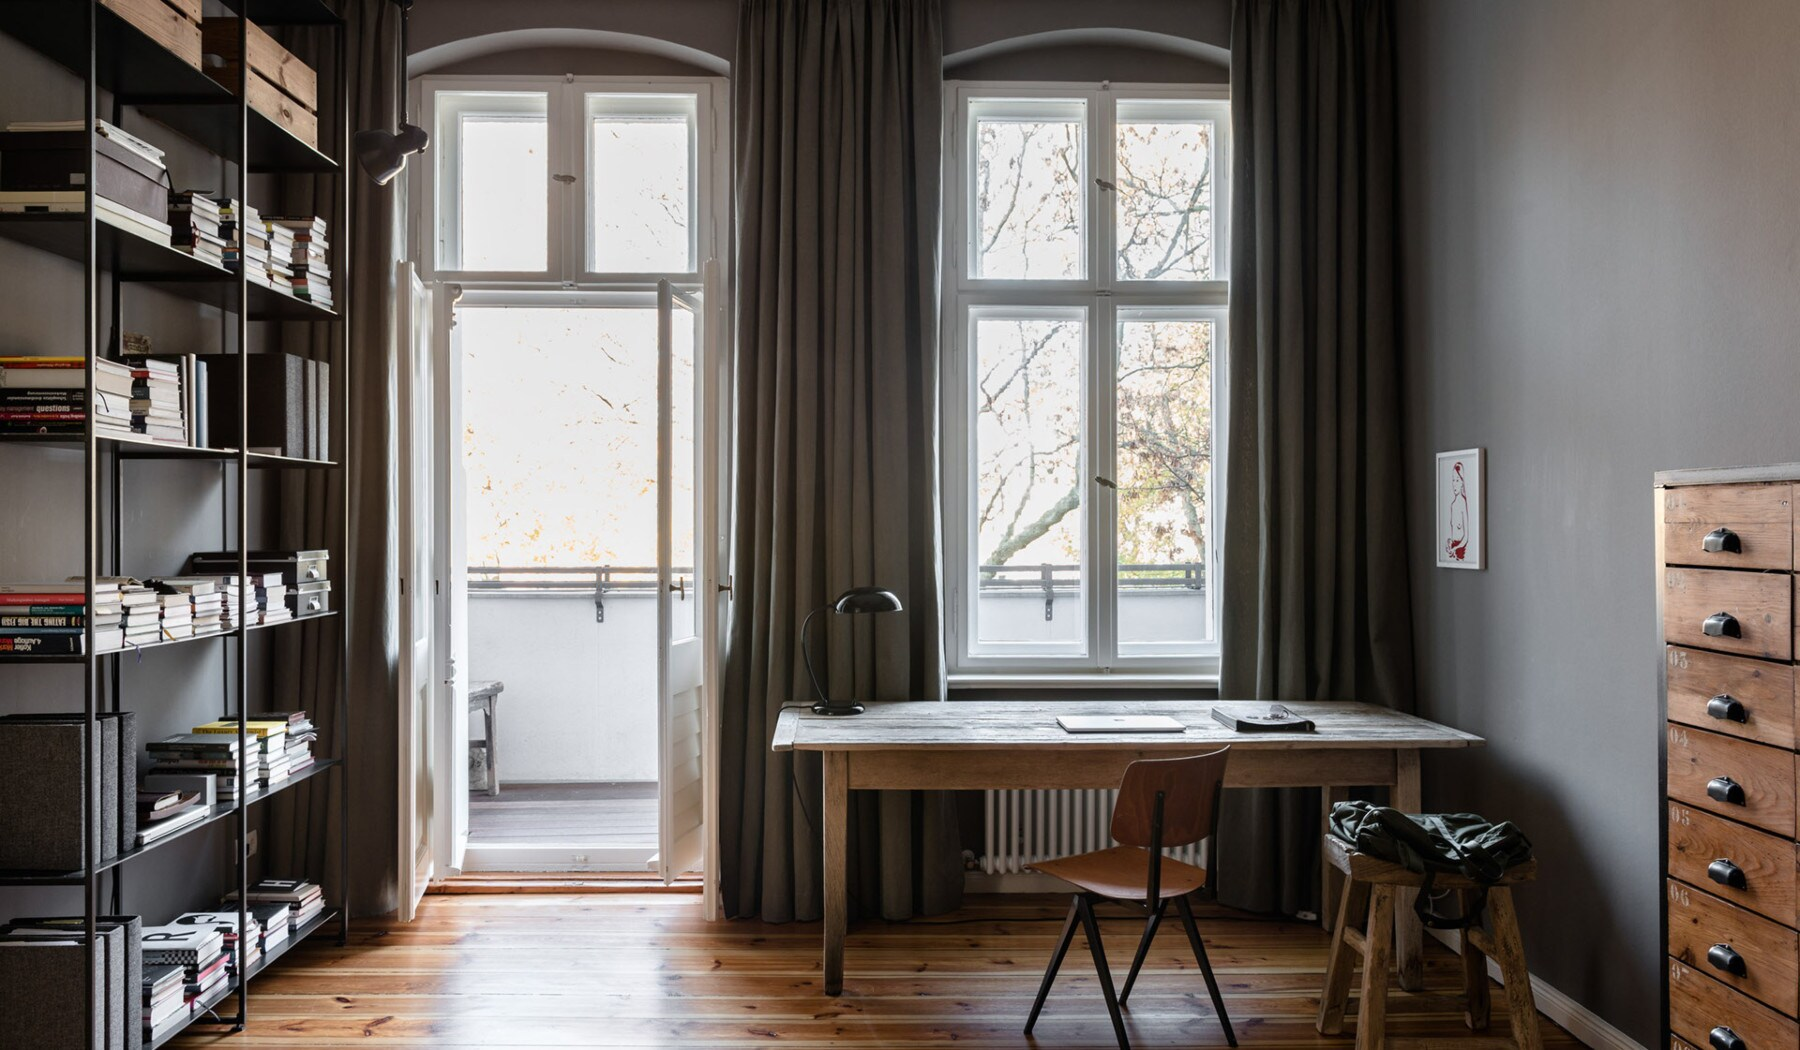 Berlin Interior Design Inside A 19th Century Berlin Apartment With A Minimalist Update